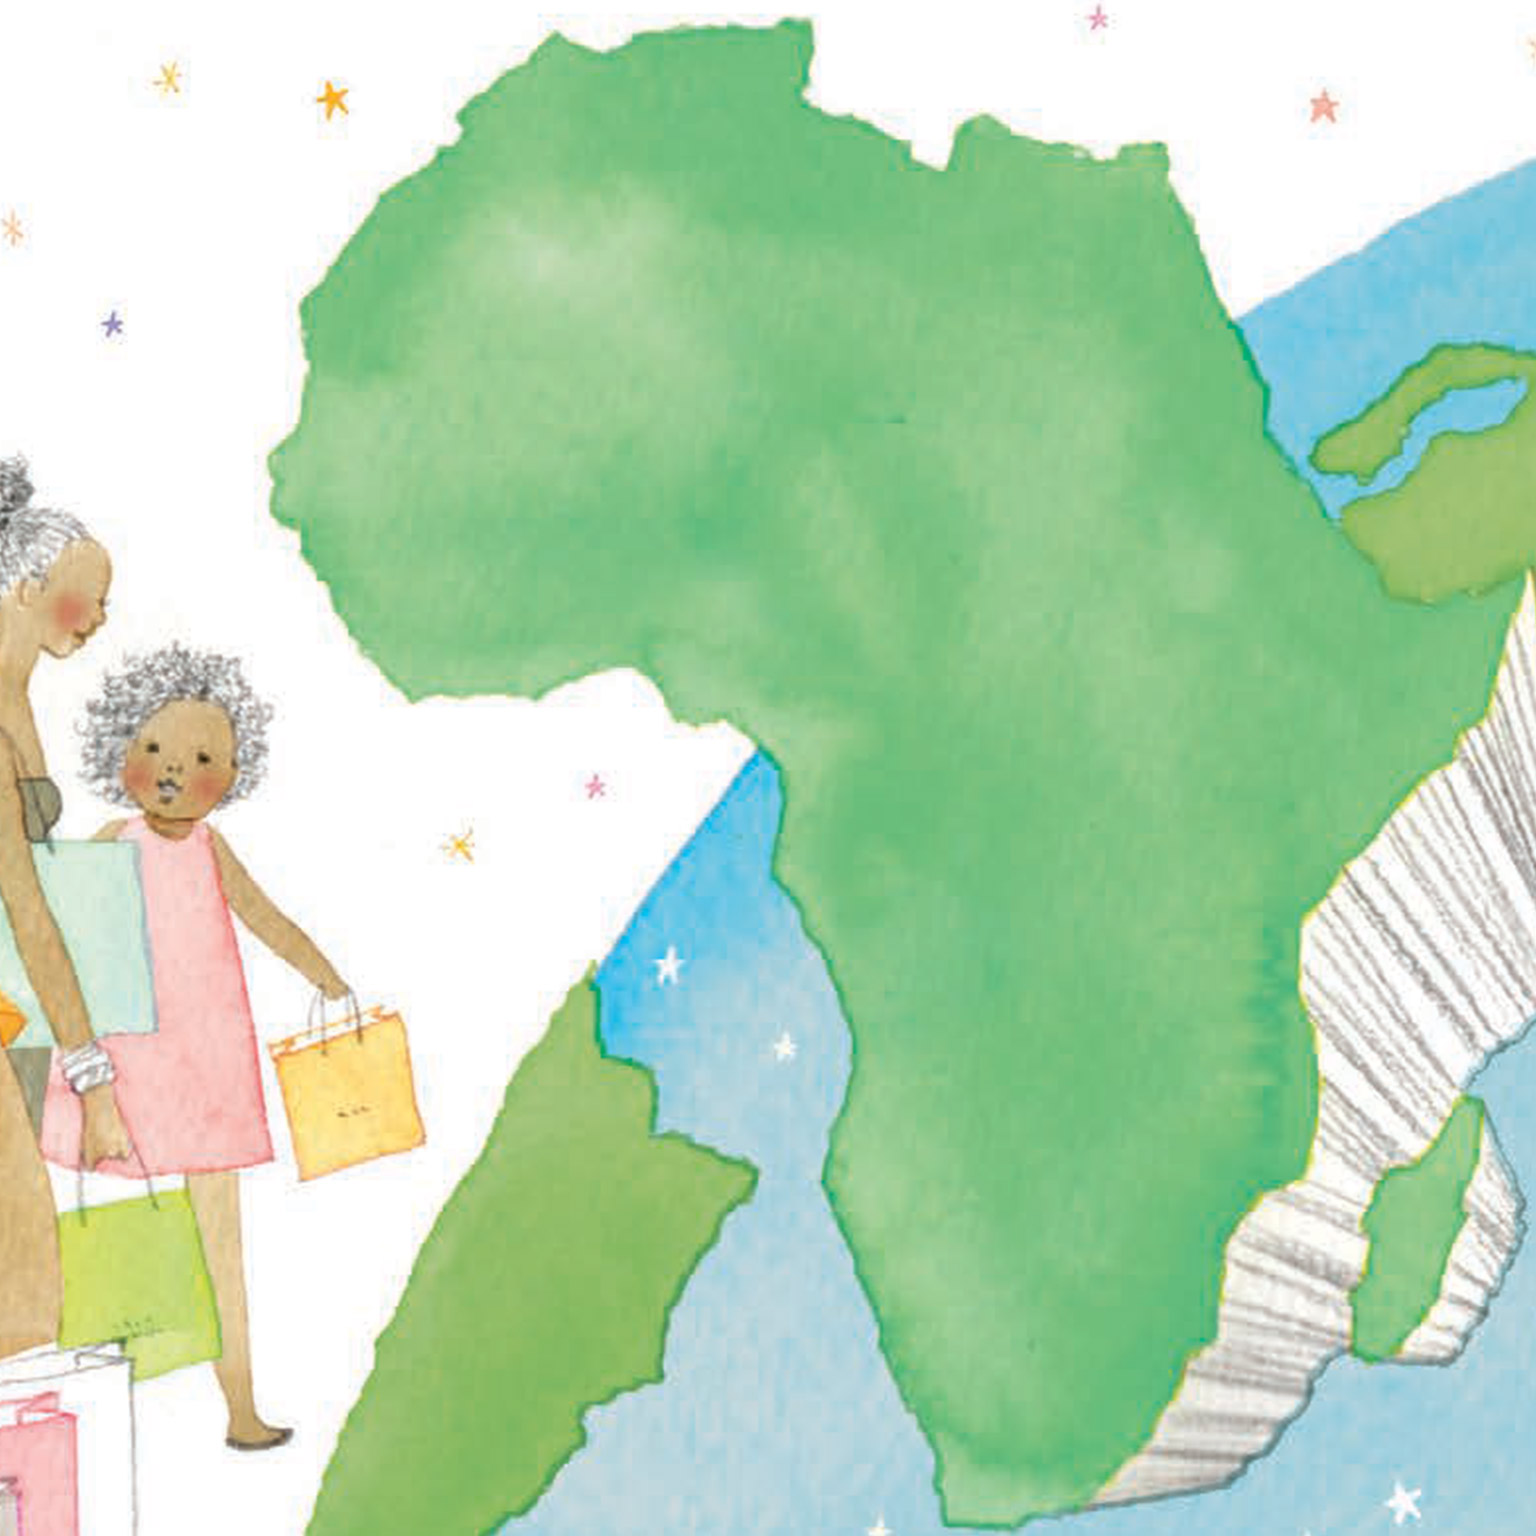 East Africa: The next hub for apparel sourcing? | McKinsey